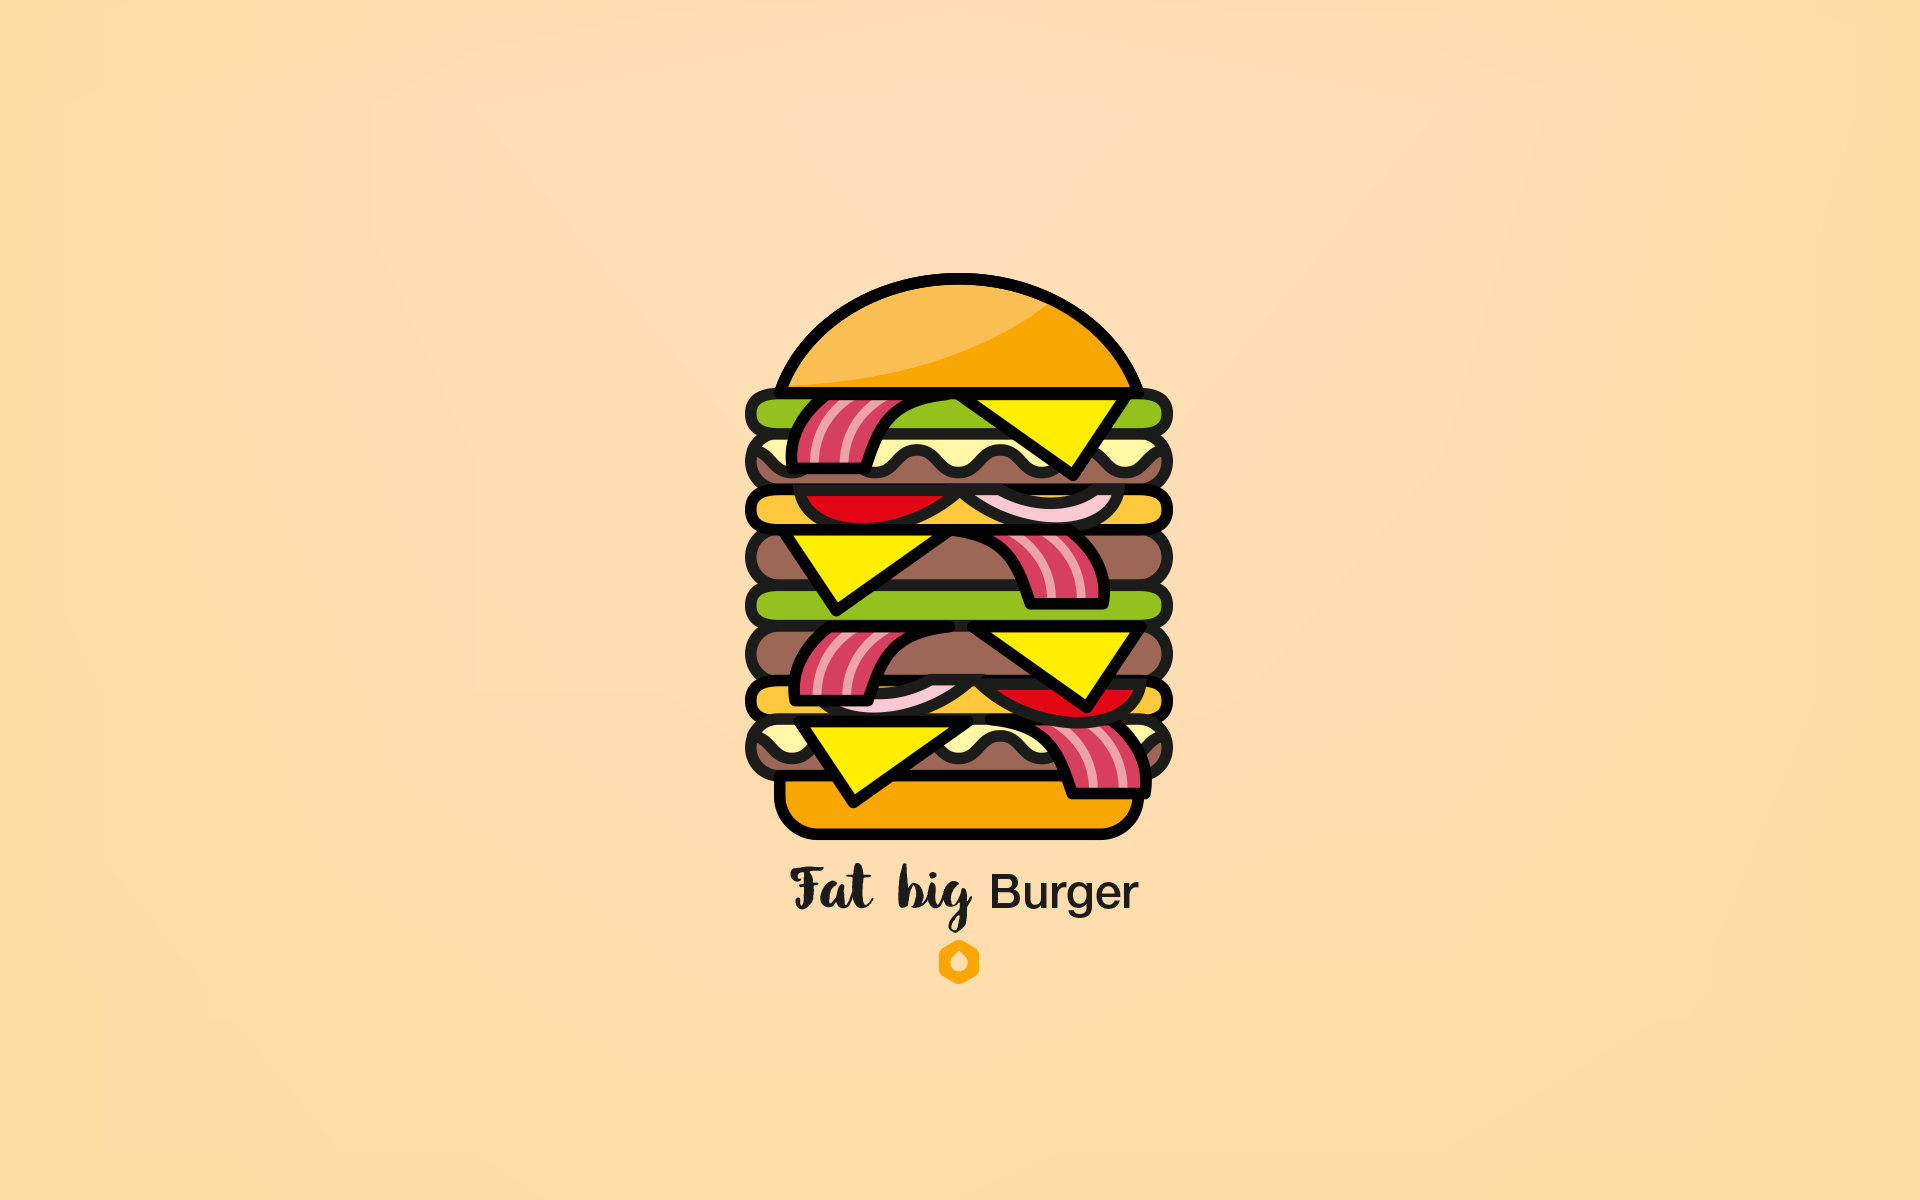 Wallpaper Pick Your Burger - DesktopHD - FatBig